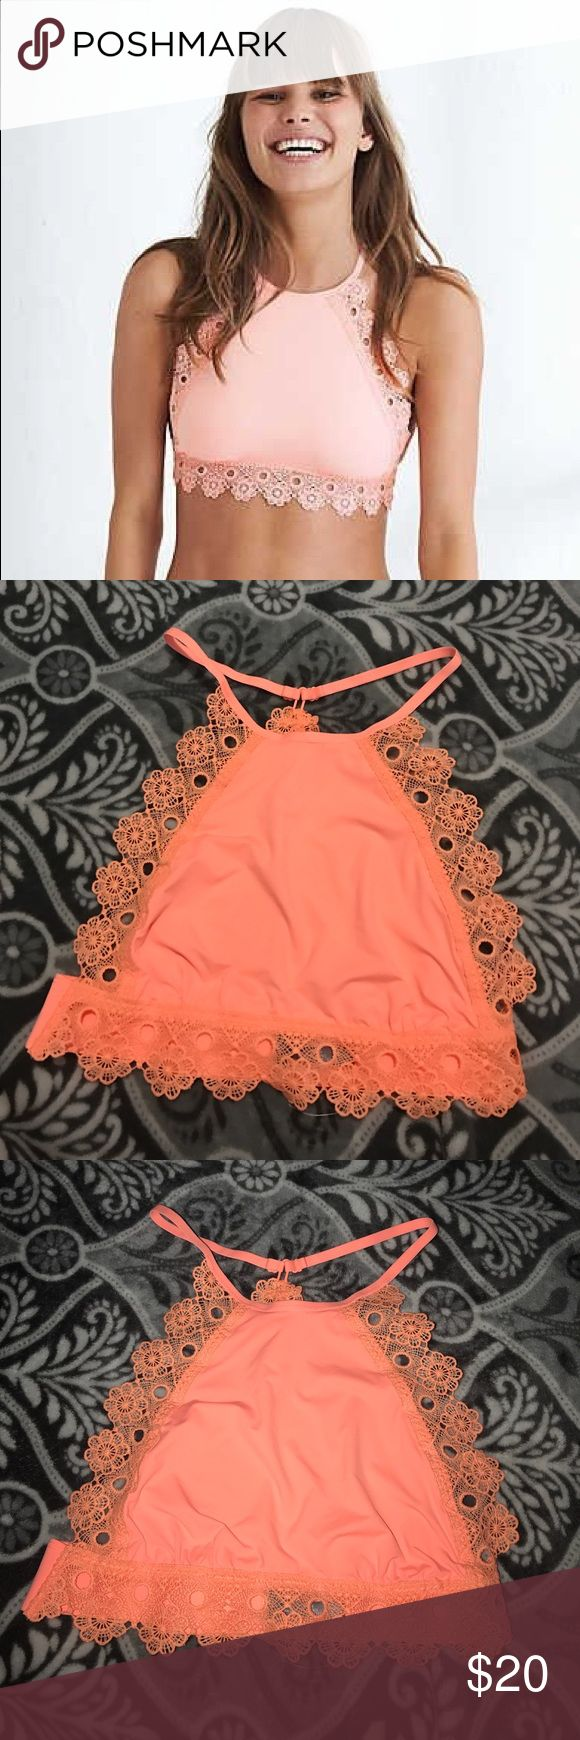 Aerie Hi-Neck Lace Trim Bralette, Pink XS New without tag. Never worn! Gorgeous sorbet pink bralette featuring a high neck design and lace trimming racer back. aerie Intimates & Sleepwear Bras